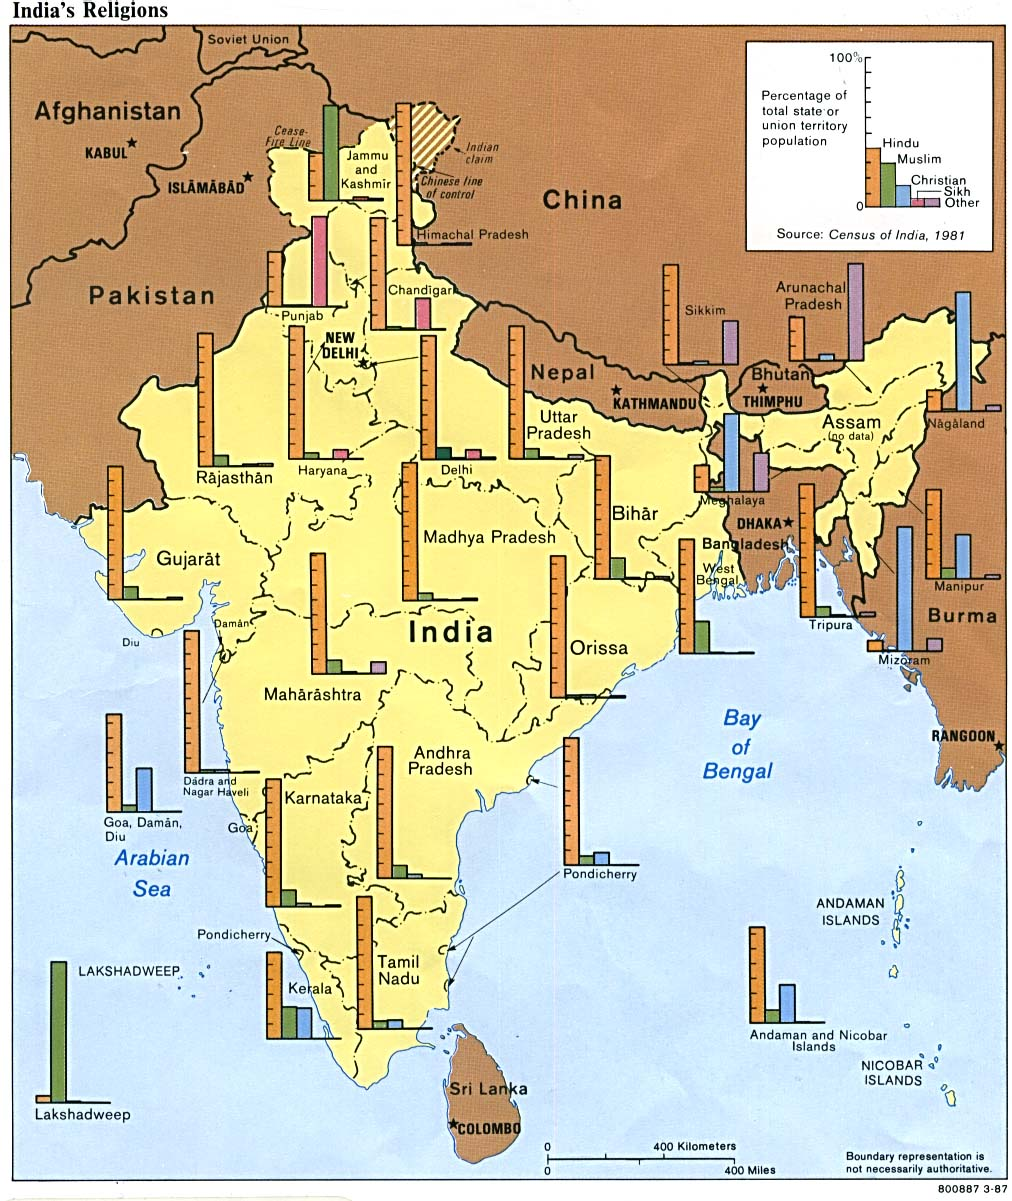 Helpinfo mapmap indiaindia map poinitng with riversmap google mapmap indiaindia map poinitng with riversmap googlemap india states gumiabroncs Image collections